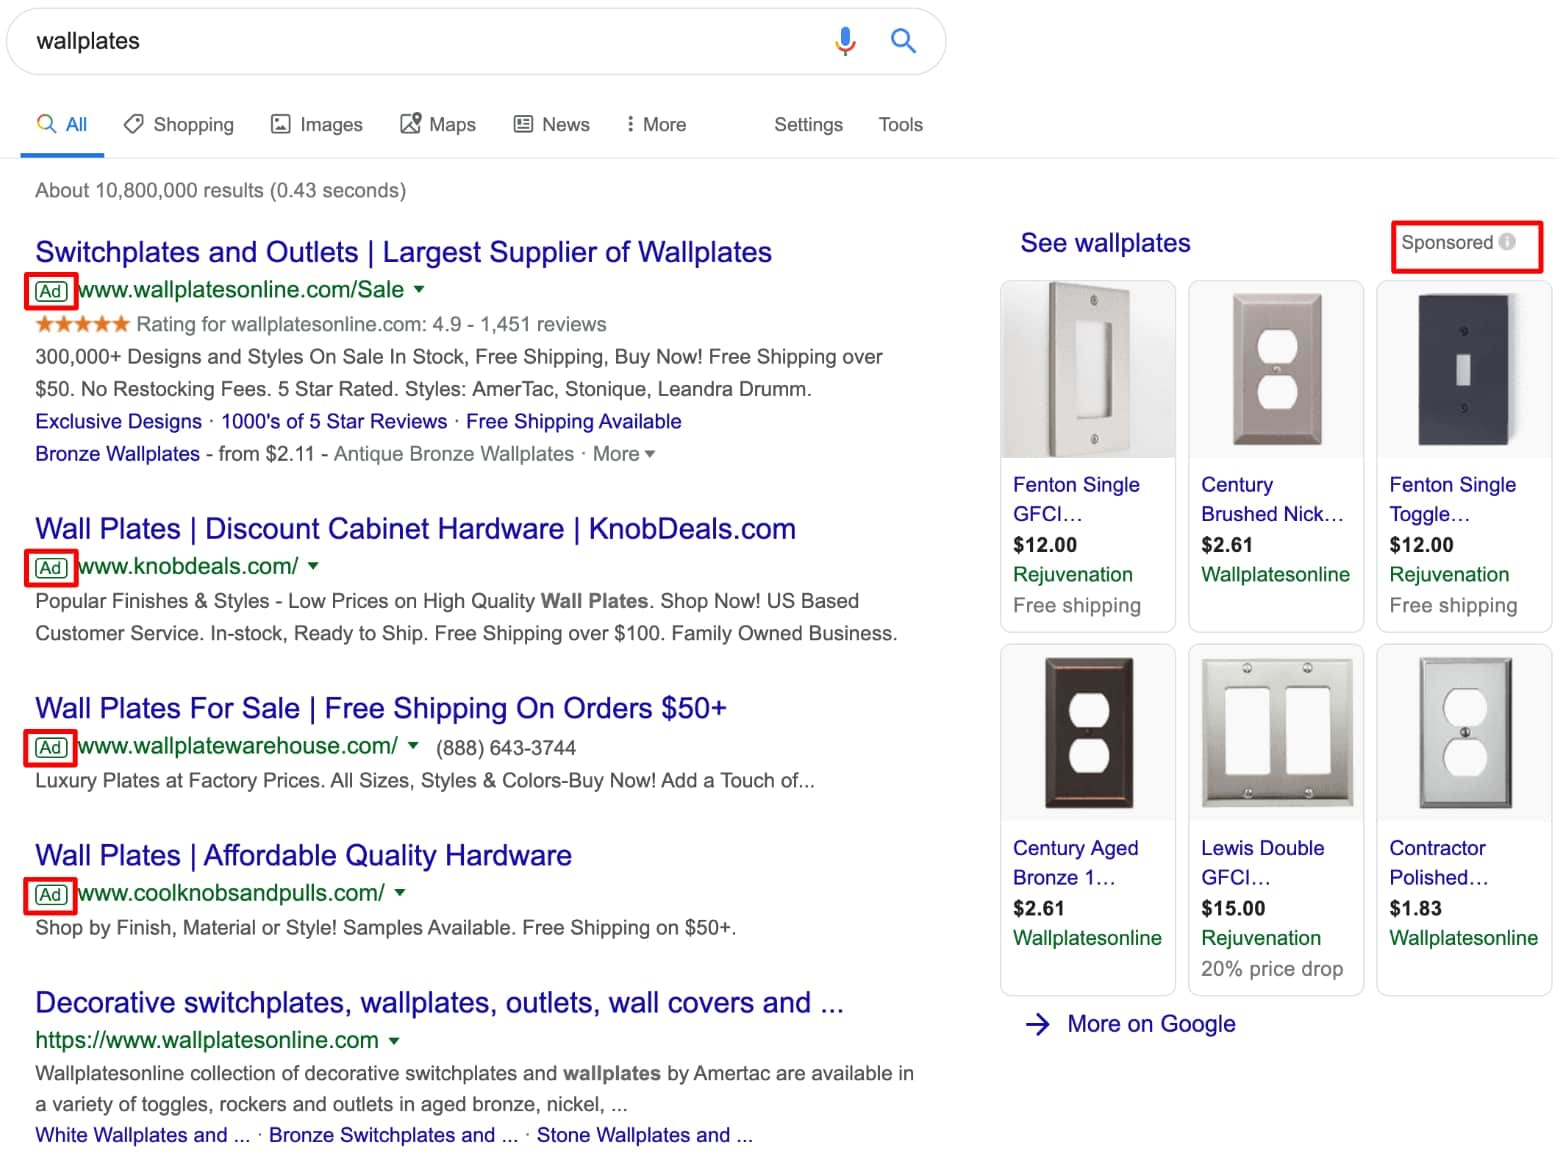 Screenshot of the results page for wallplates